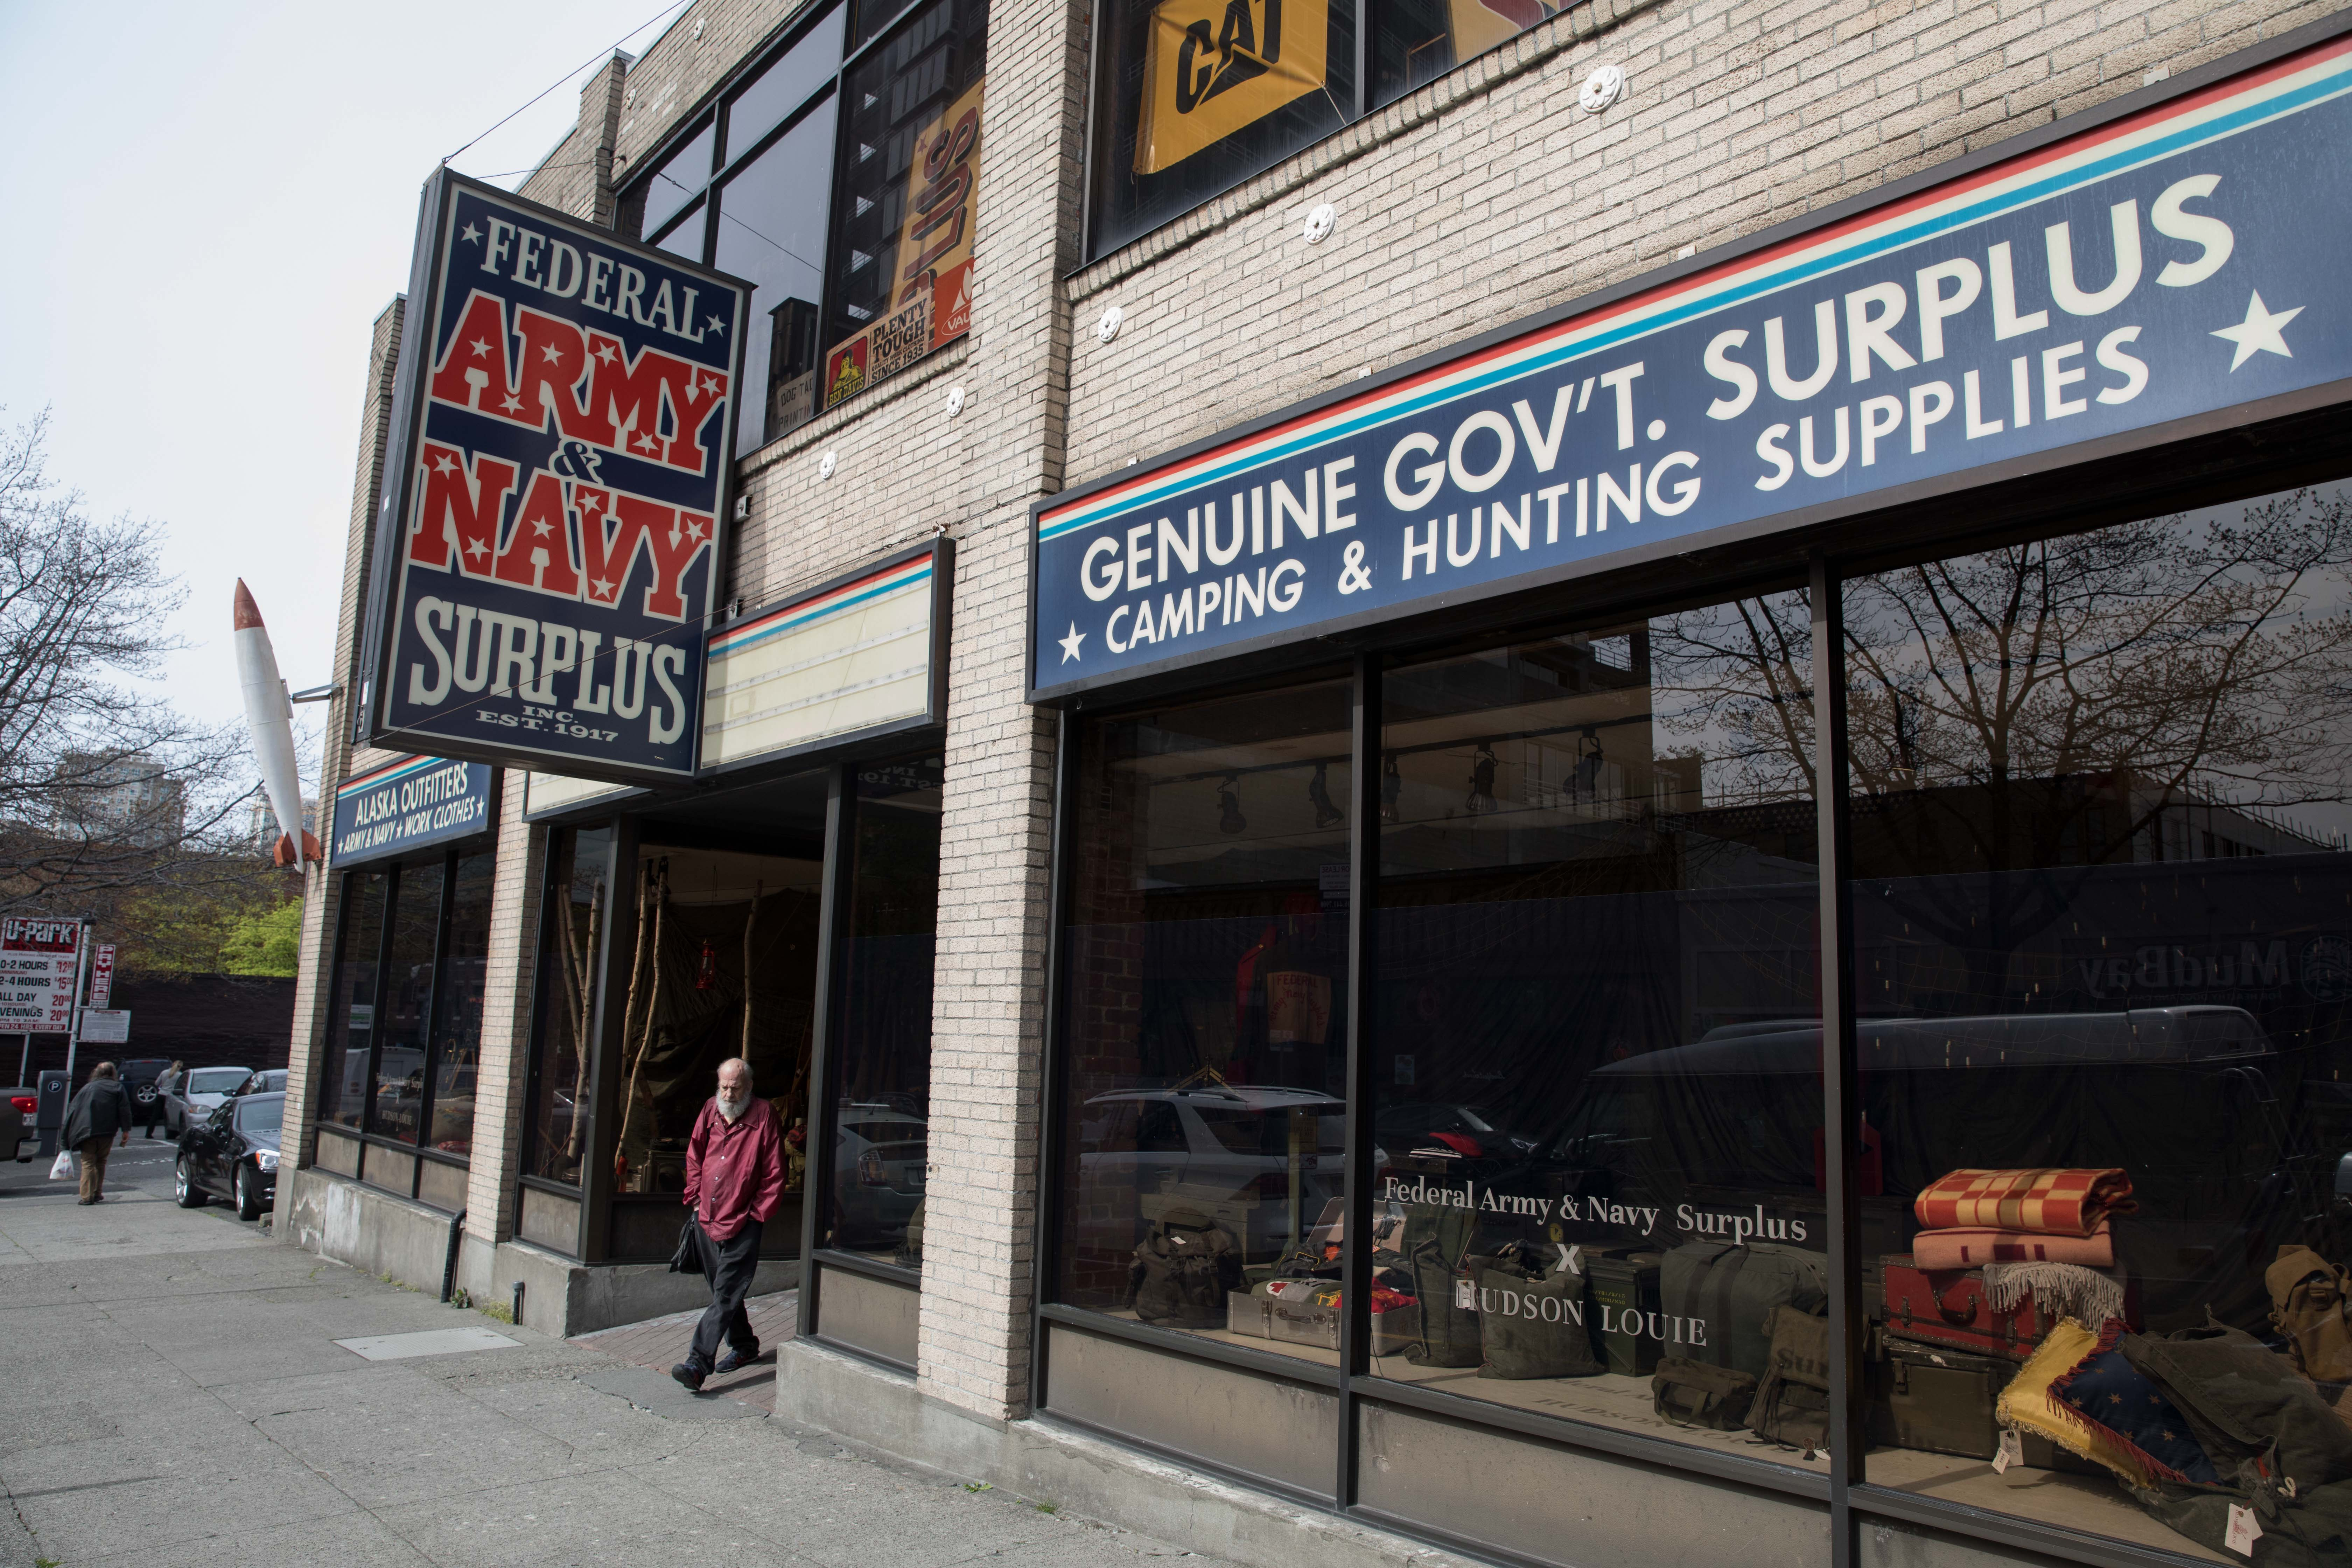 So Seattle: The military surplus store that's a mainstay in